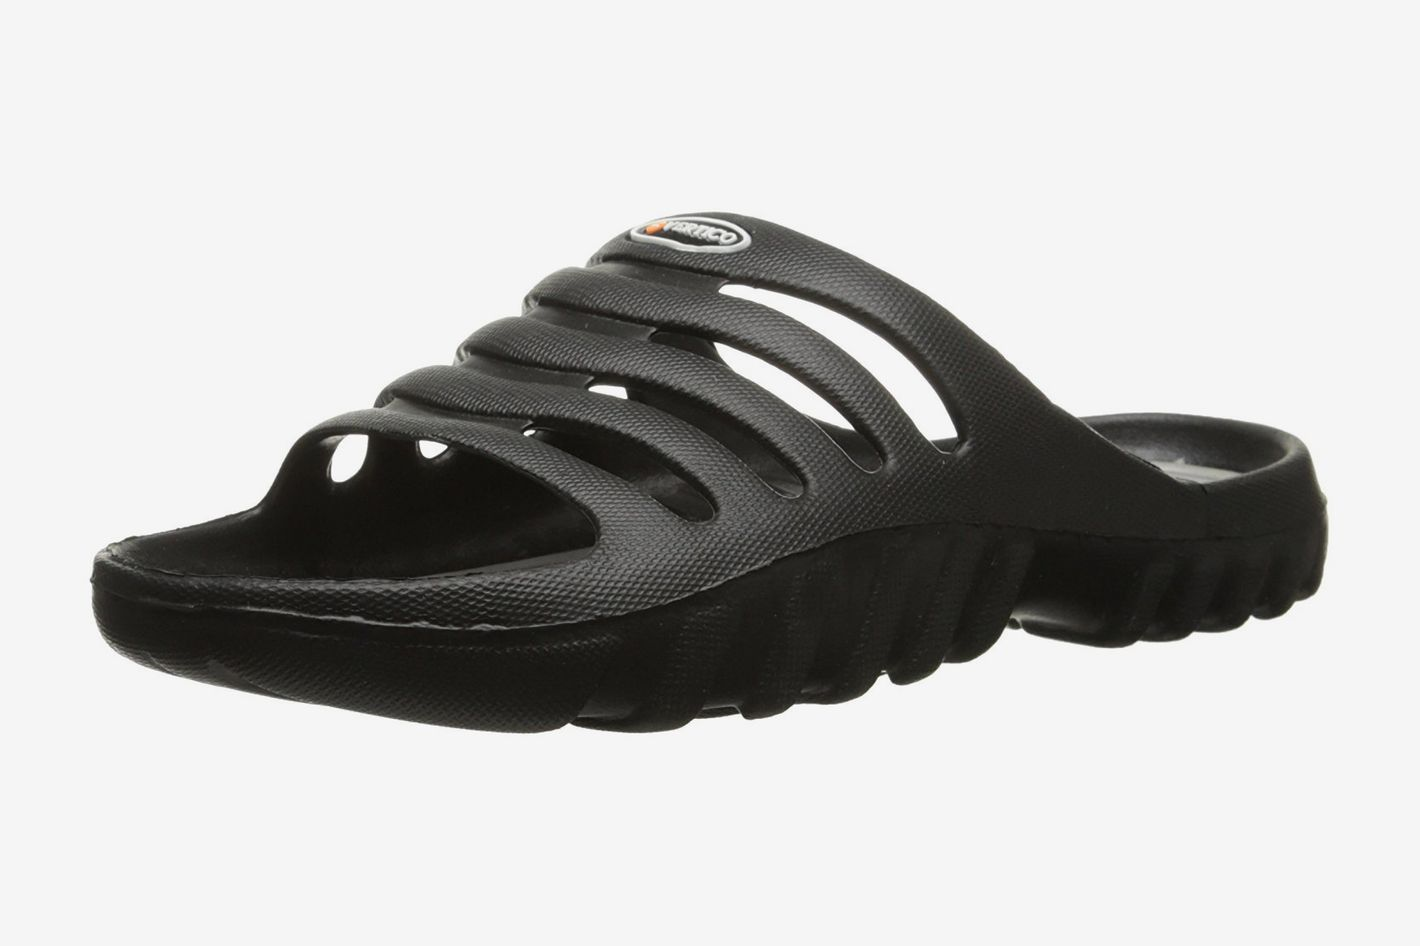 1c9442946c06 Vertico Shower and Pool Sandal at Amazon